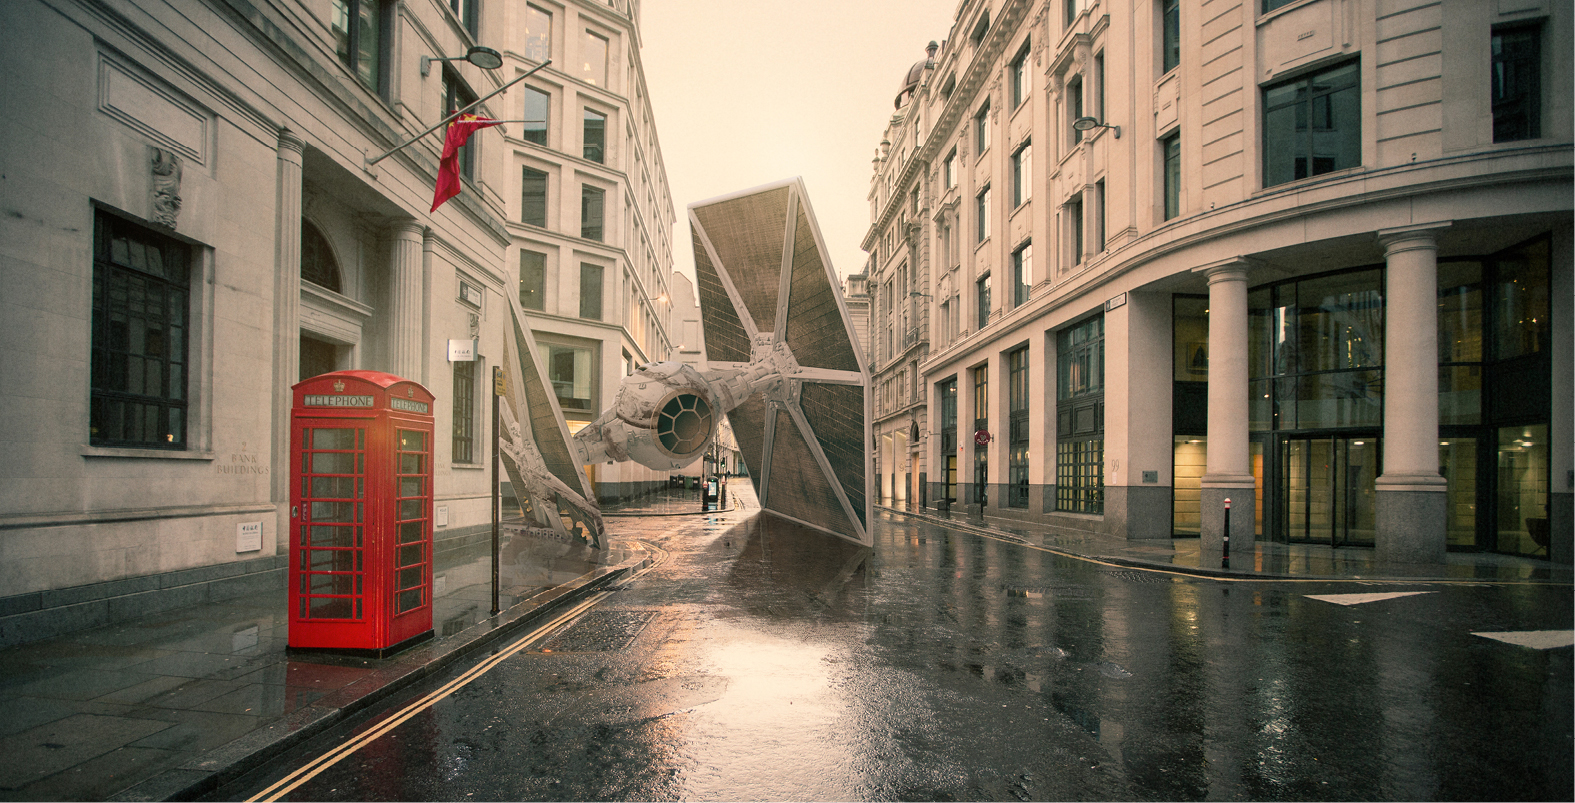 STAR WARS - LONDON